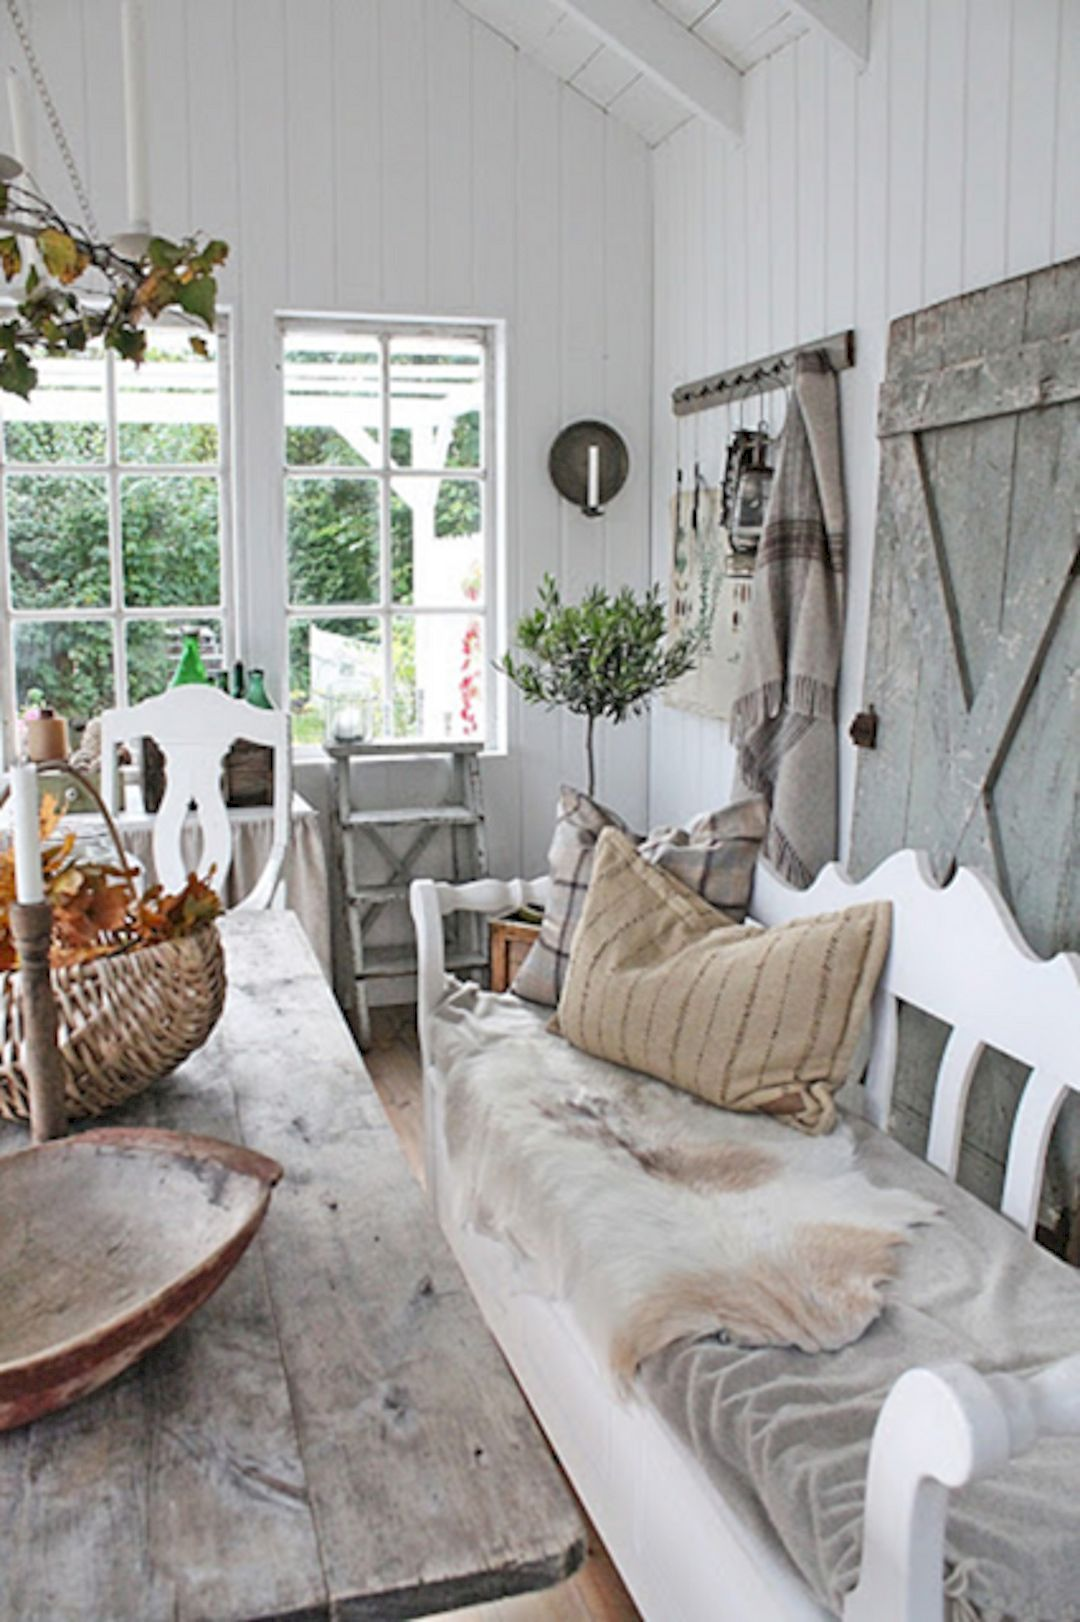 The Top 5 Absolute Best Home Decor Blogs To Follow In 2020 Swedish Decor Country Decor Rustic Country Decor